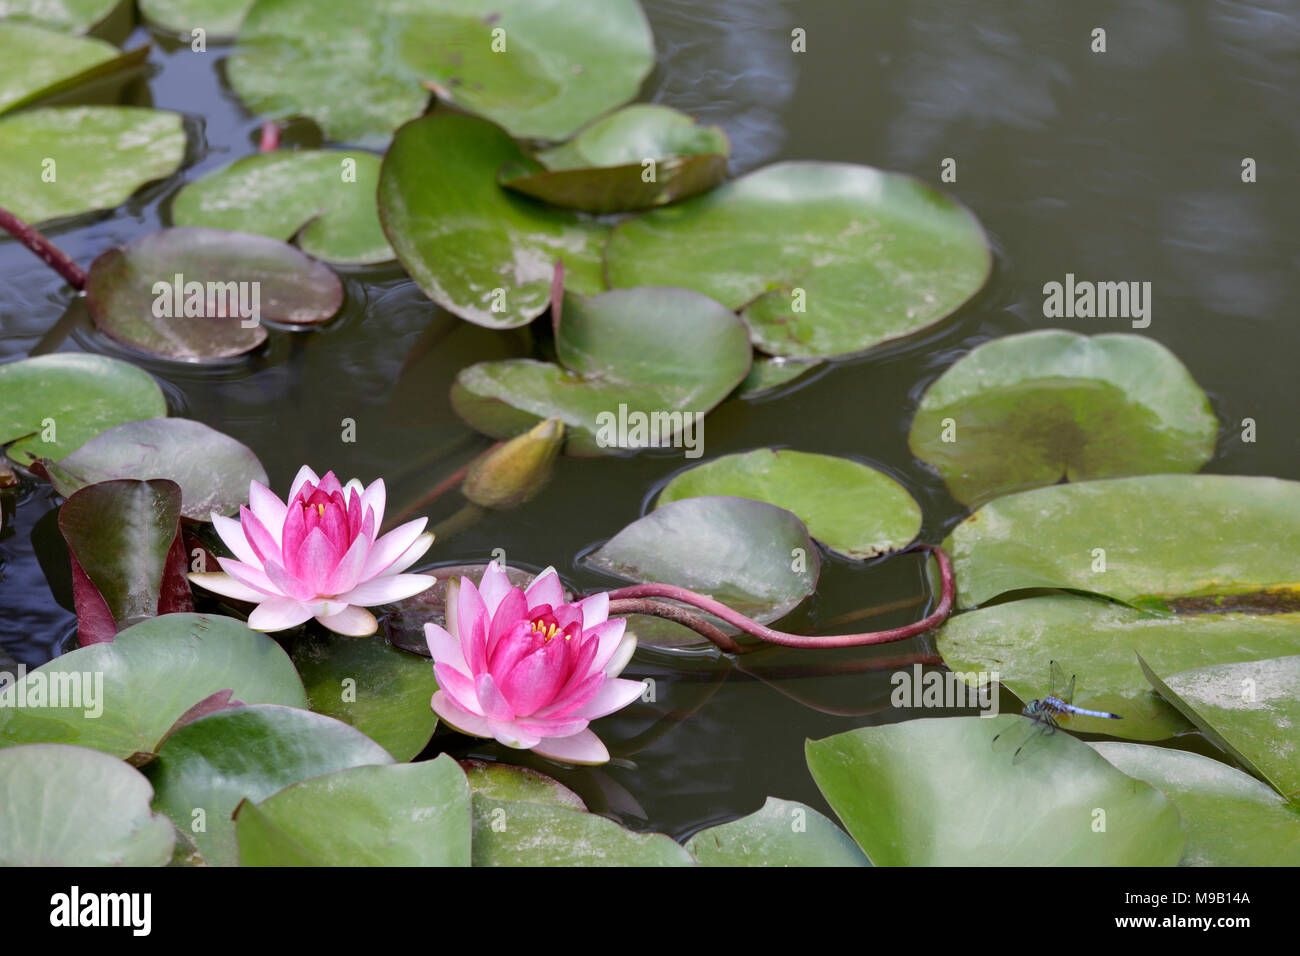 Nymphaea - Water Lily - August Stock Photo